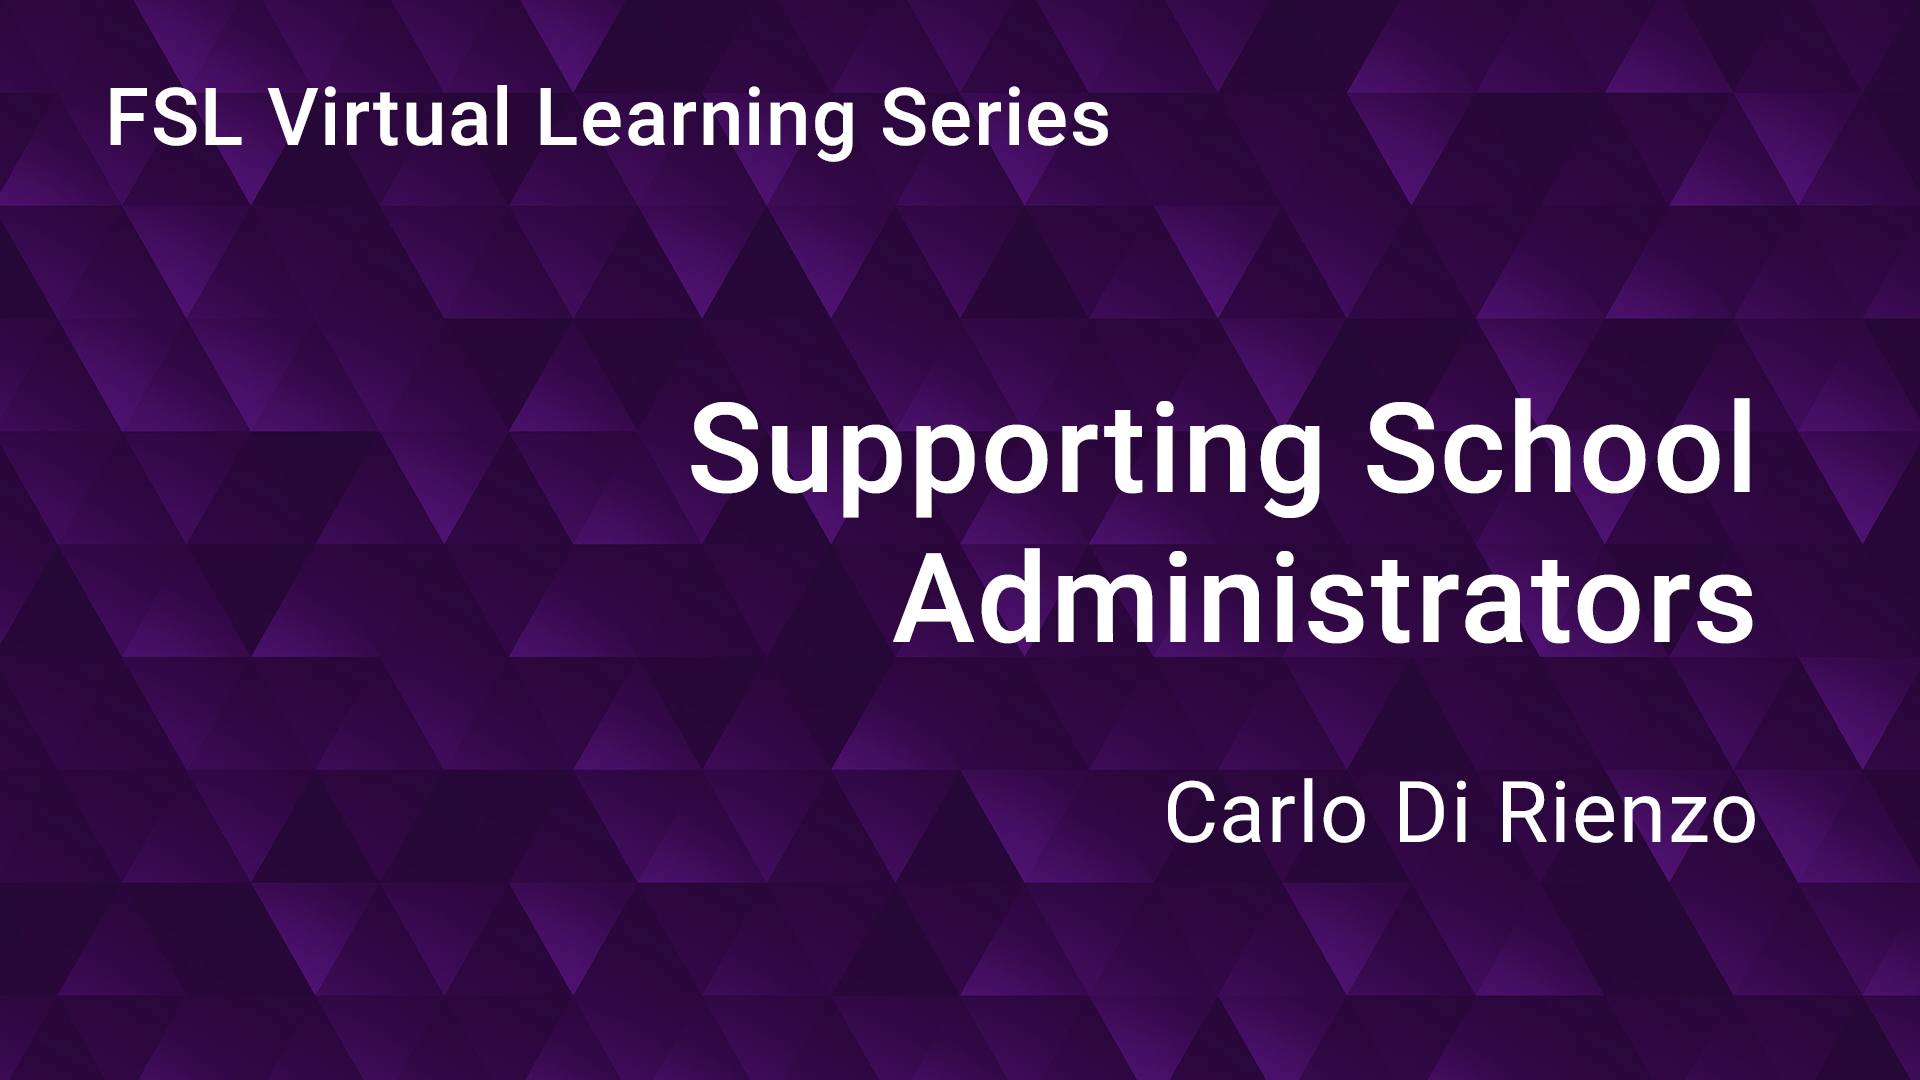 FSL Virtual Learning Series - Supporting School Administrators